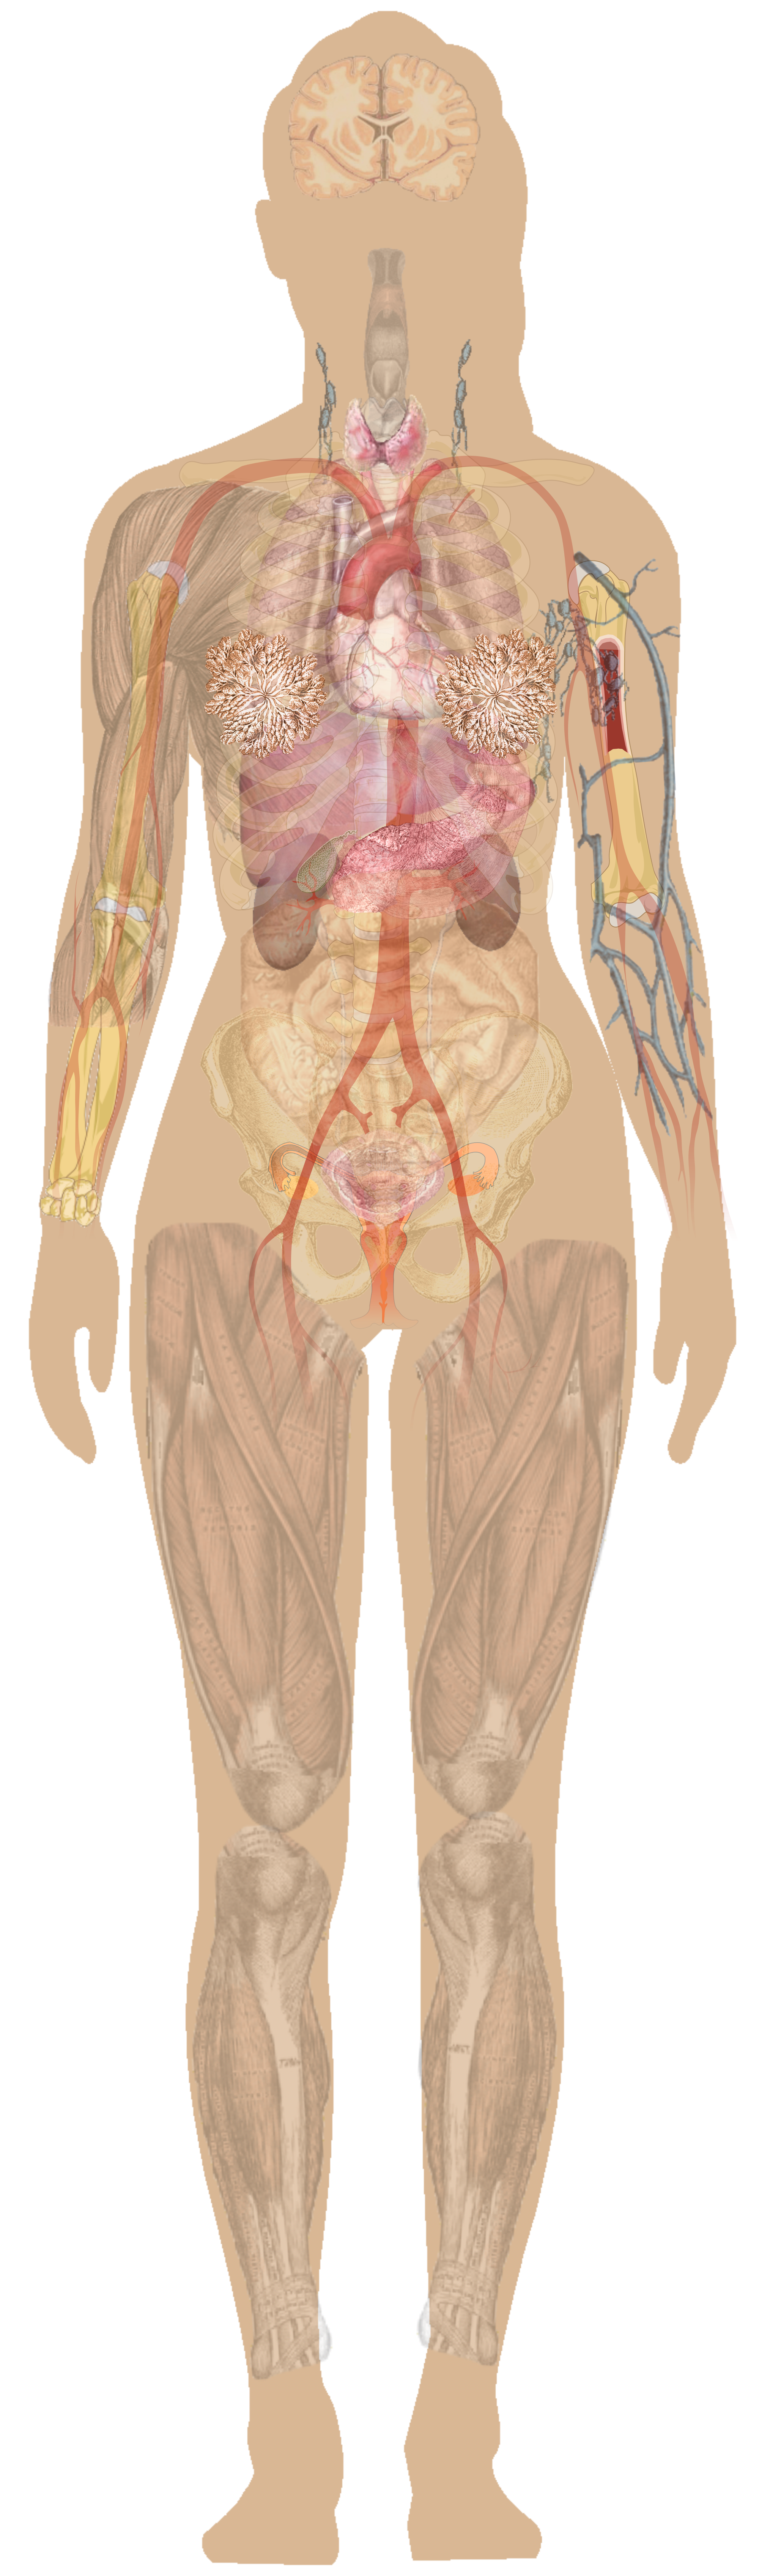 Astounding Anatomy Vector Human Torso Picture 1301585 Anatomy Vector Human Torso Wiring Cloud Oideiuggs Outletorg